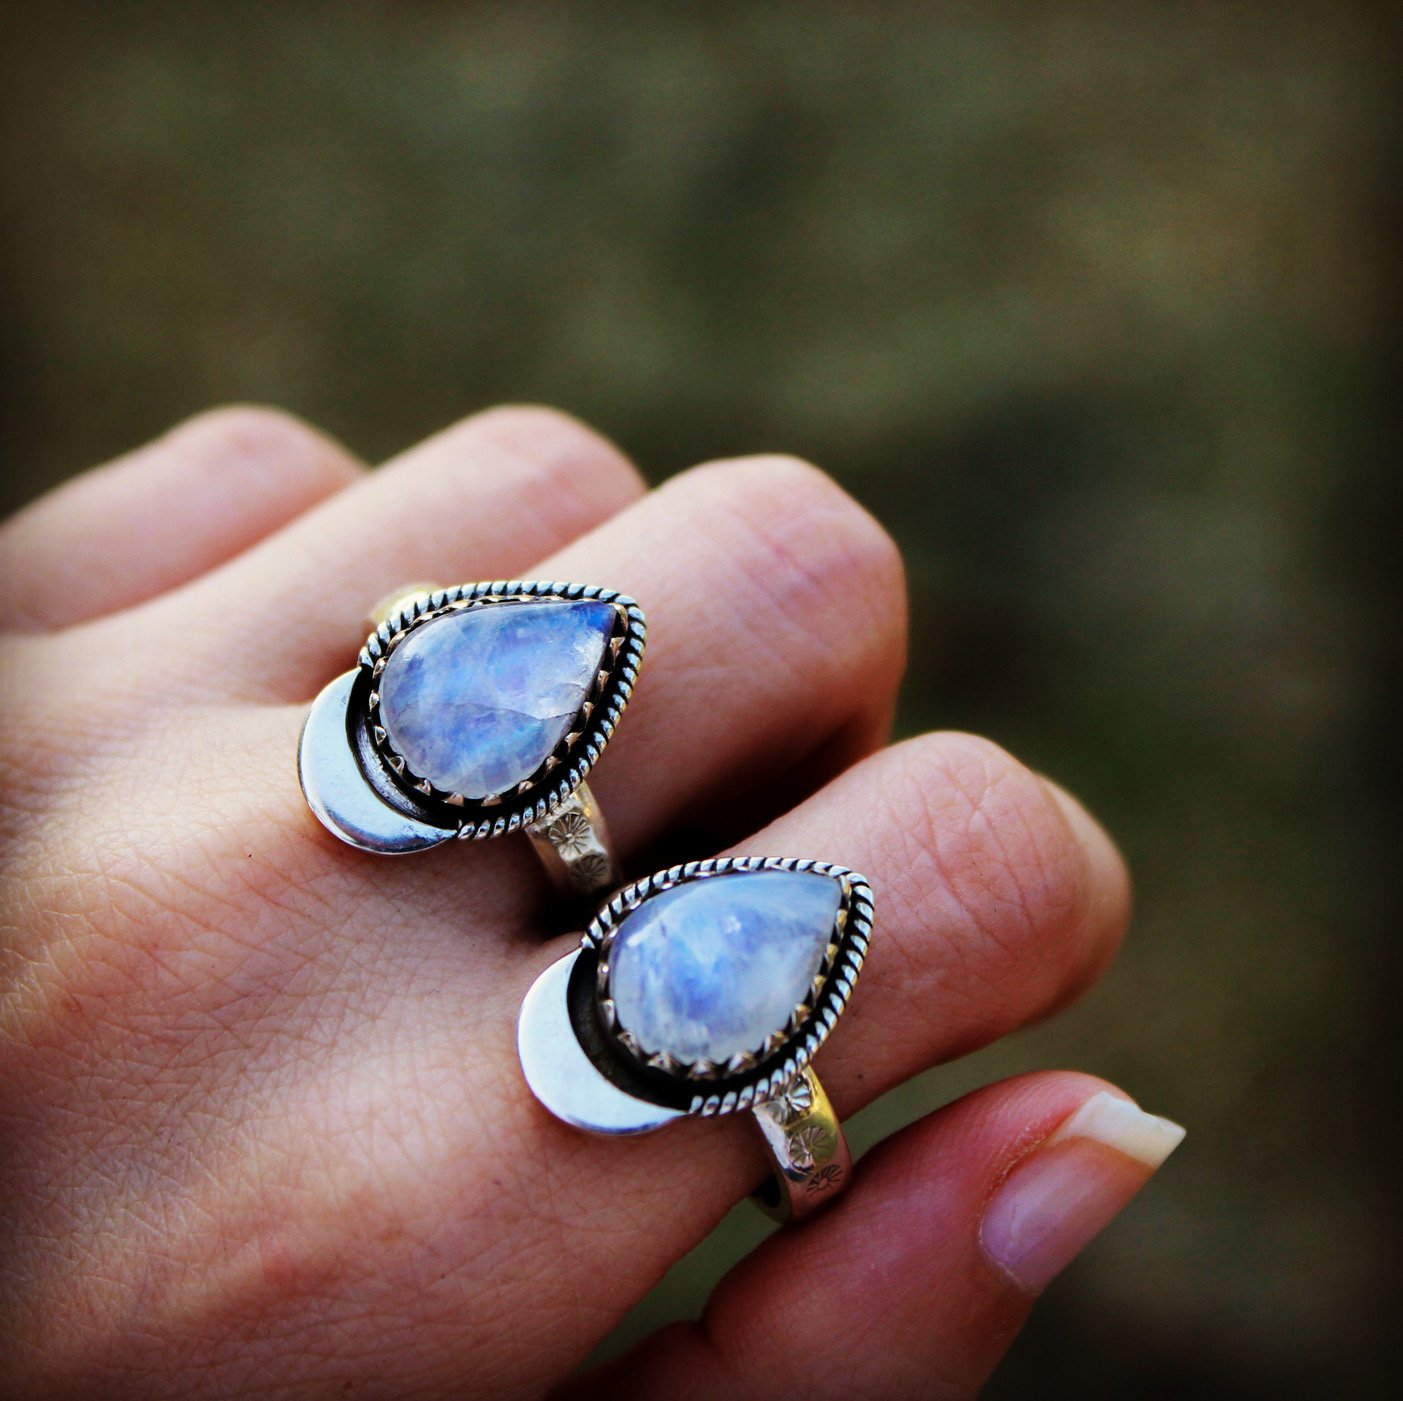 Crescent Moon Moonstone Ring, AR-2072 - Its Ambra